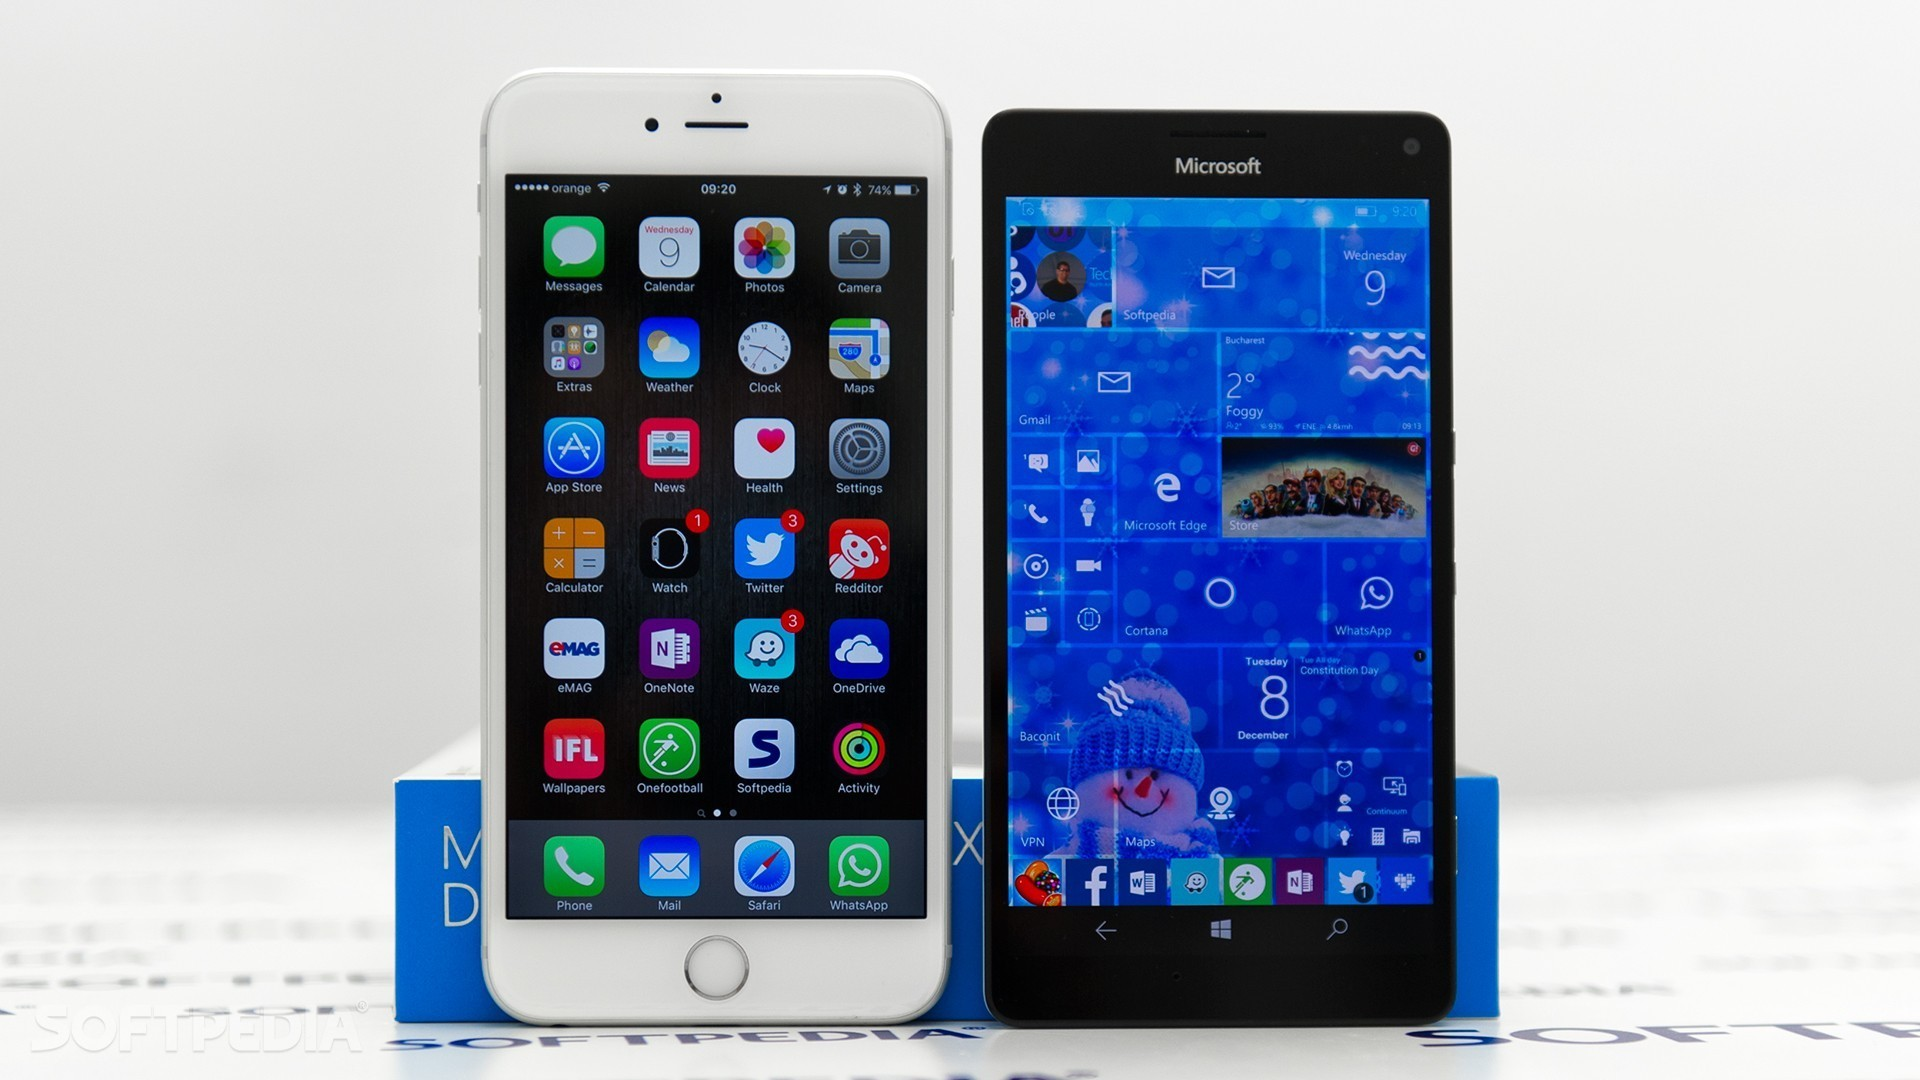 1920x1080 Apple's iPhone 6s Plus and the Lumia 950 XL ...